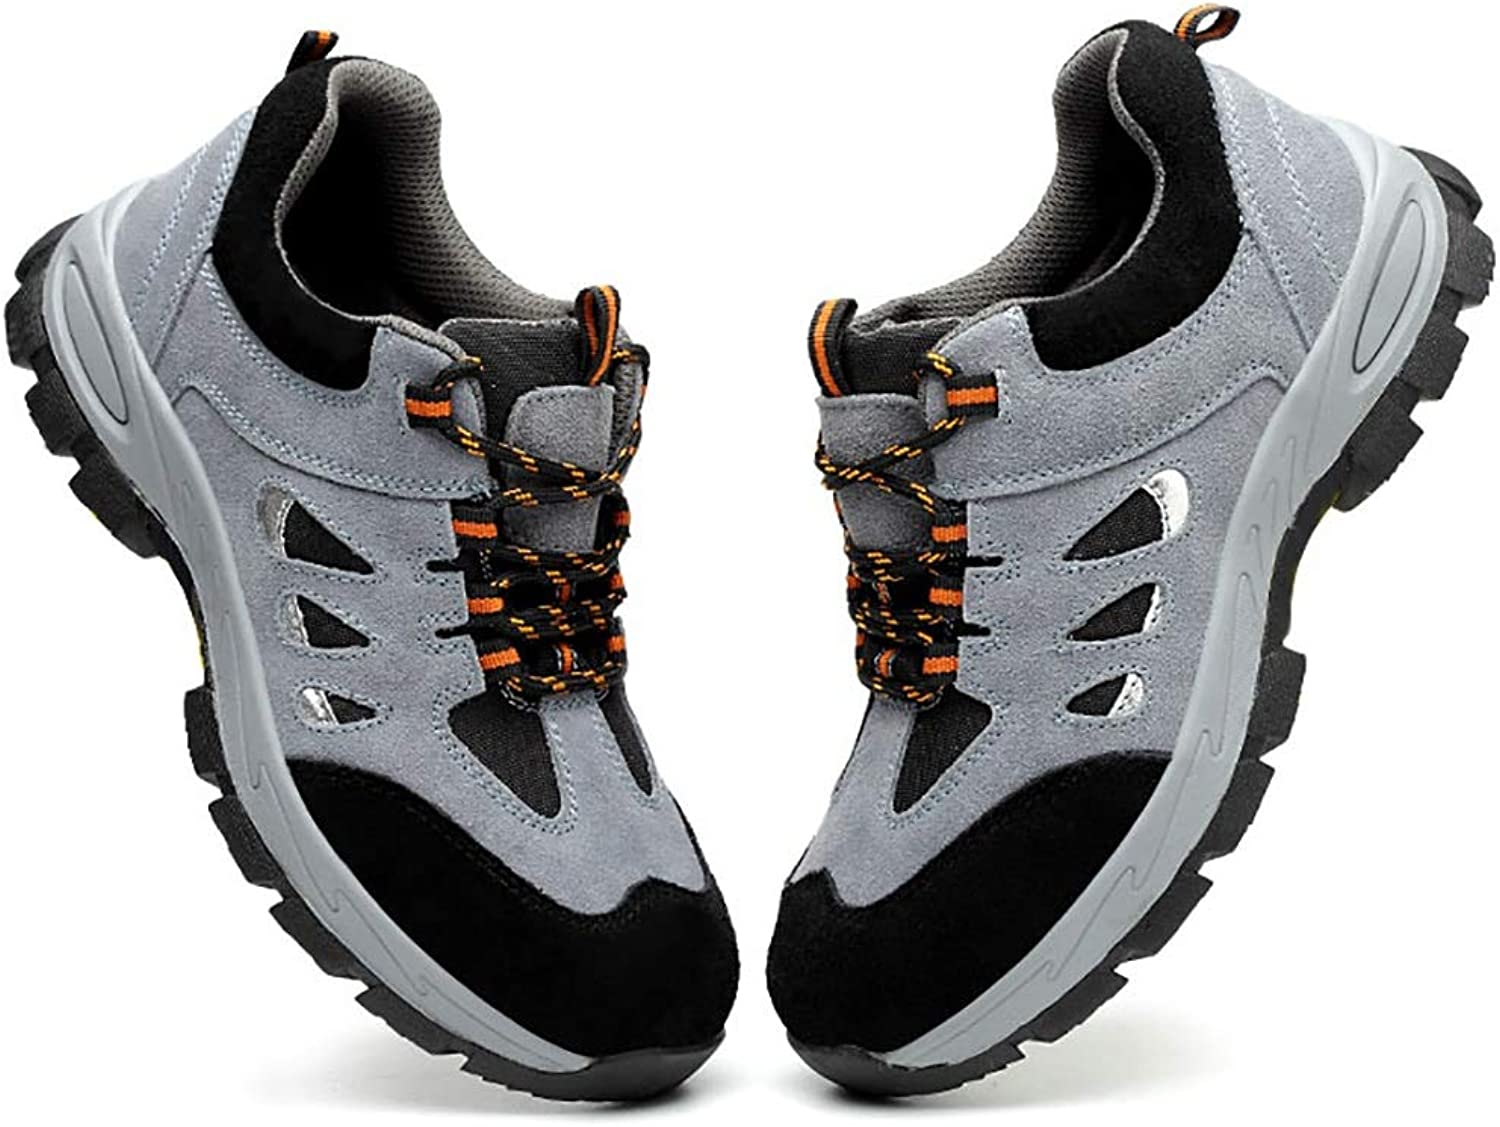 Yxwxz Gym wear for men Sneakers tendon summer breathable woven shoes labor insurance anti-mite puncture work shoes wear-resistant anti-slip on cloud running shoes (Size   40)